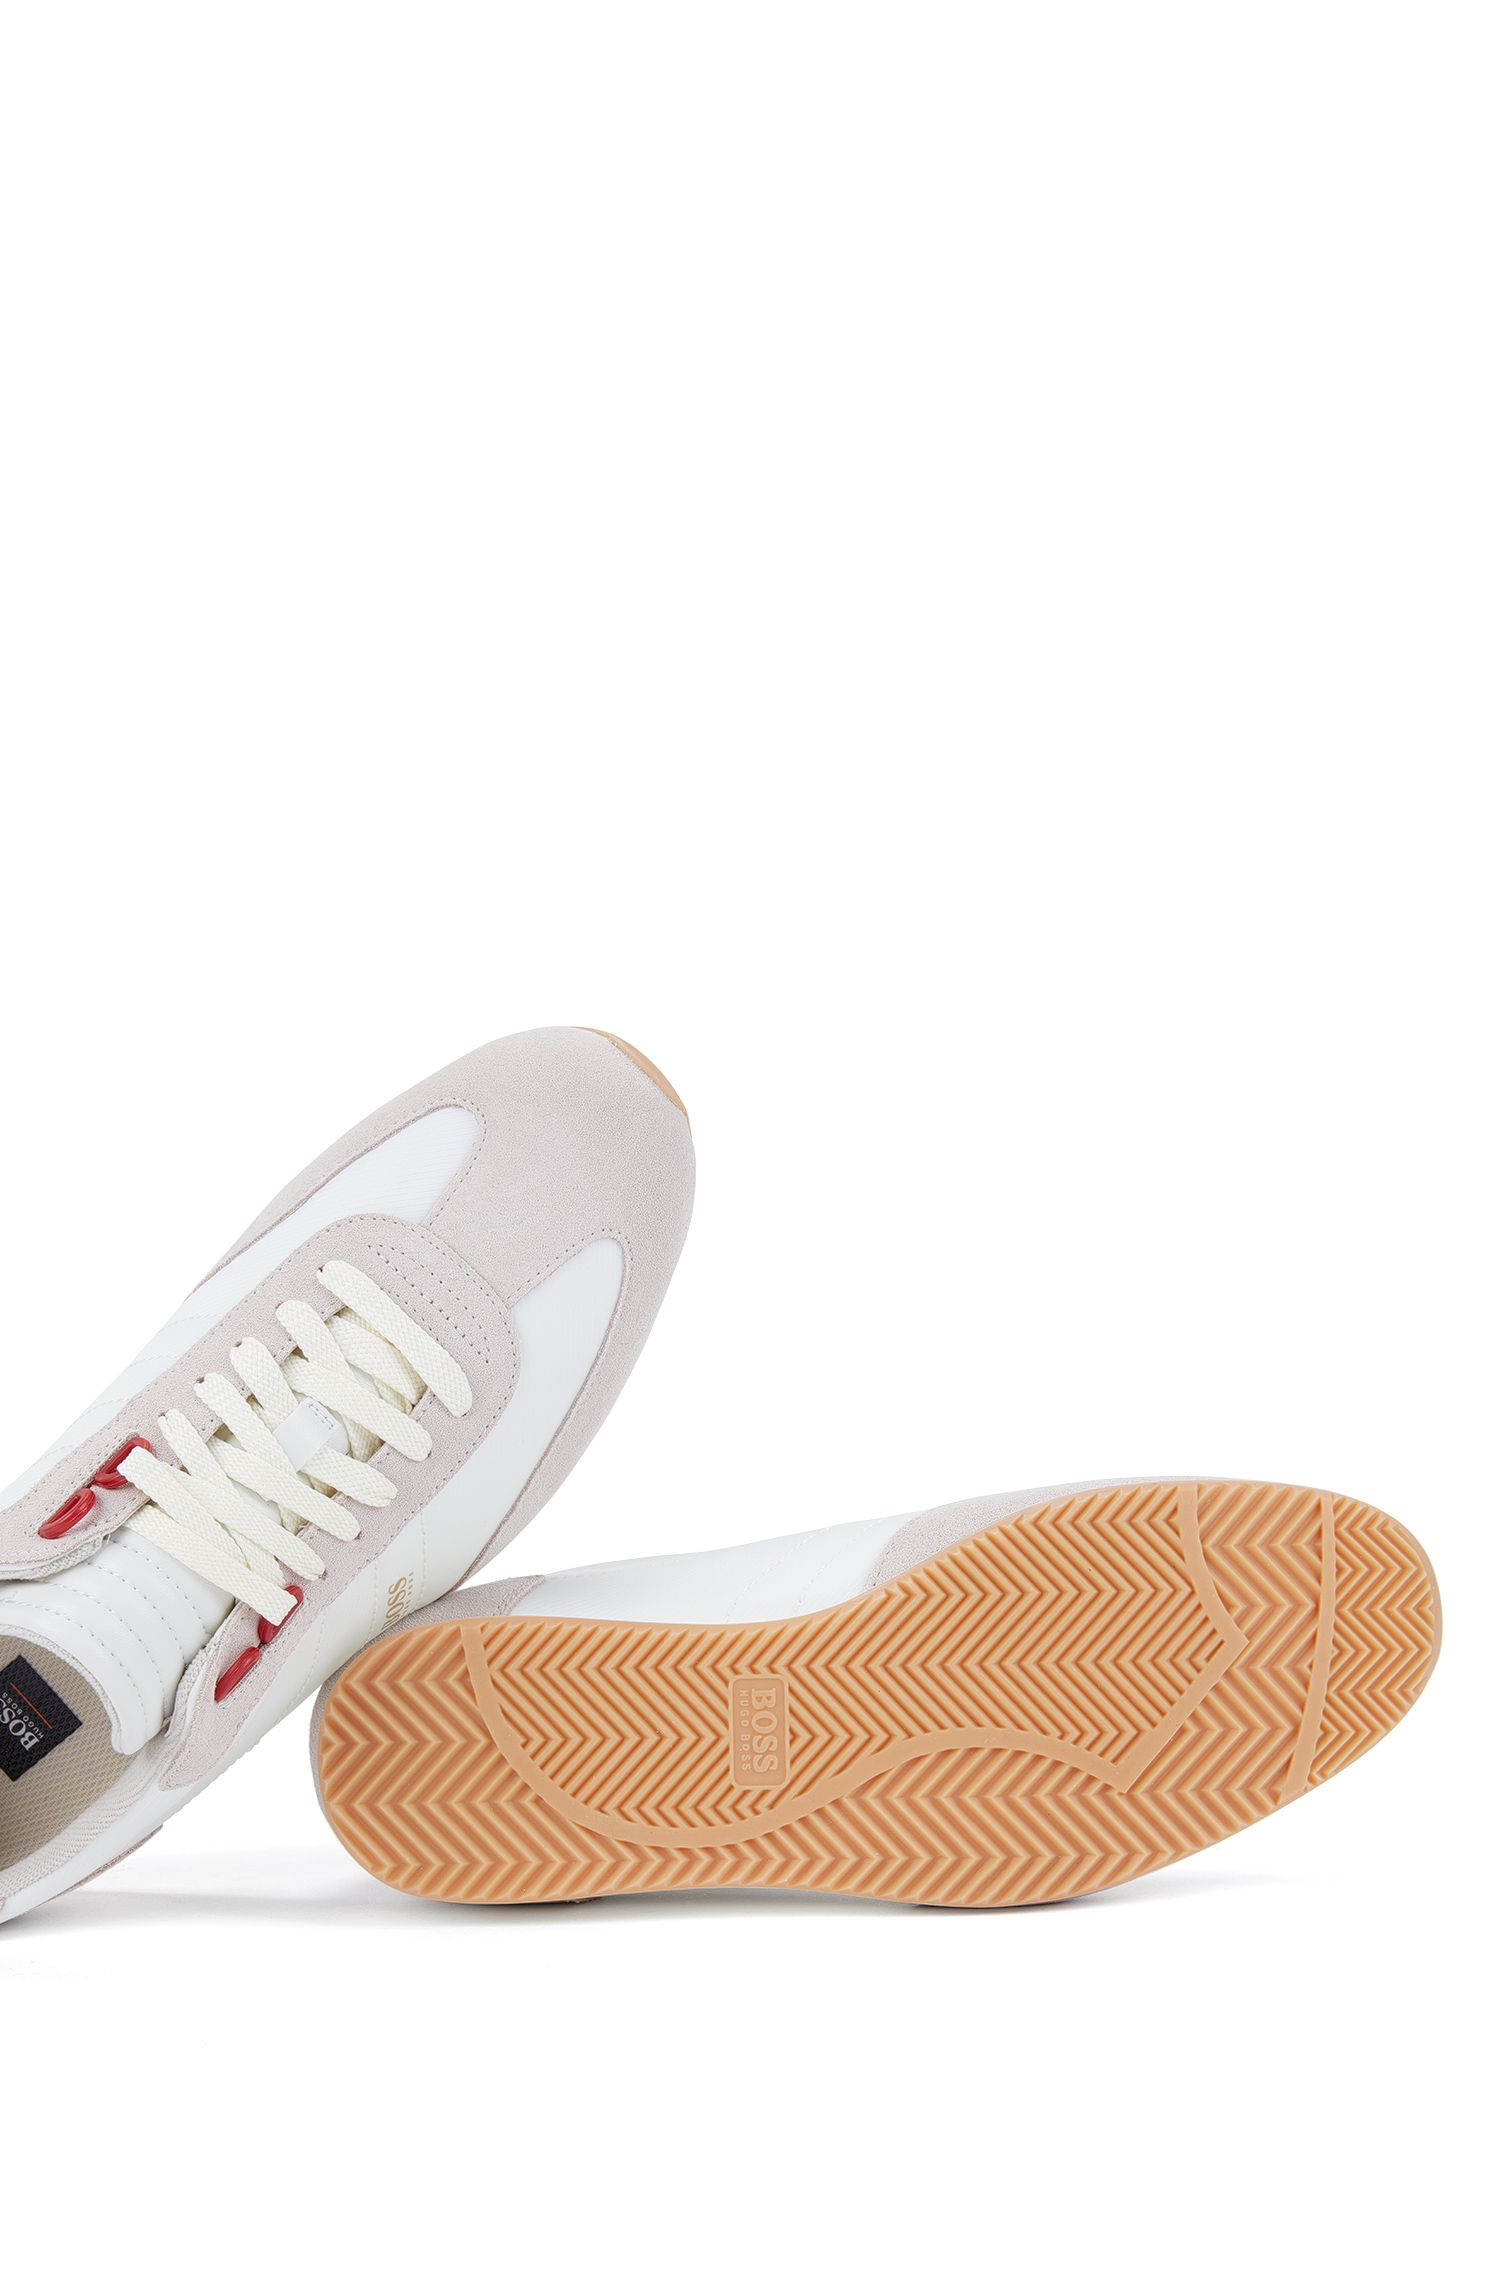 Suede & Nylon Sneaker | Orland Lowp Sdny